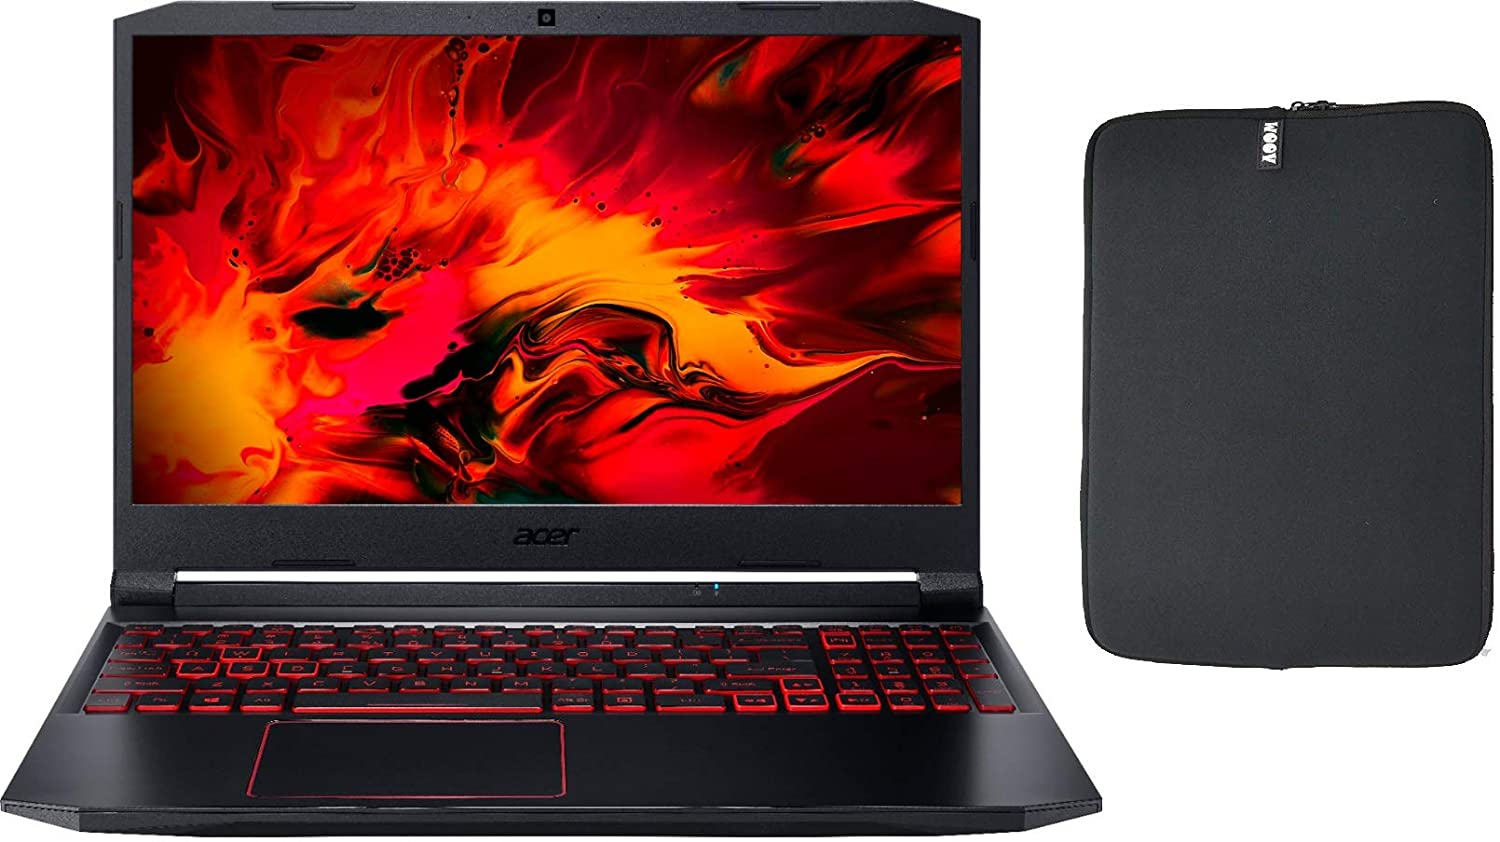 "Acer Nitro 5 15.6"" FHD IPS Gaming Laptop w/ Woov Sleeve, Intel Quad-Core i5-10300H, 16GB RAM, 256GB PCIe SSD, NVIDIA GeForce GTX 1650 4GB, Backlit Keyboard, Windows 10 Home"